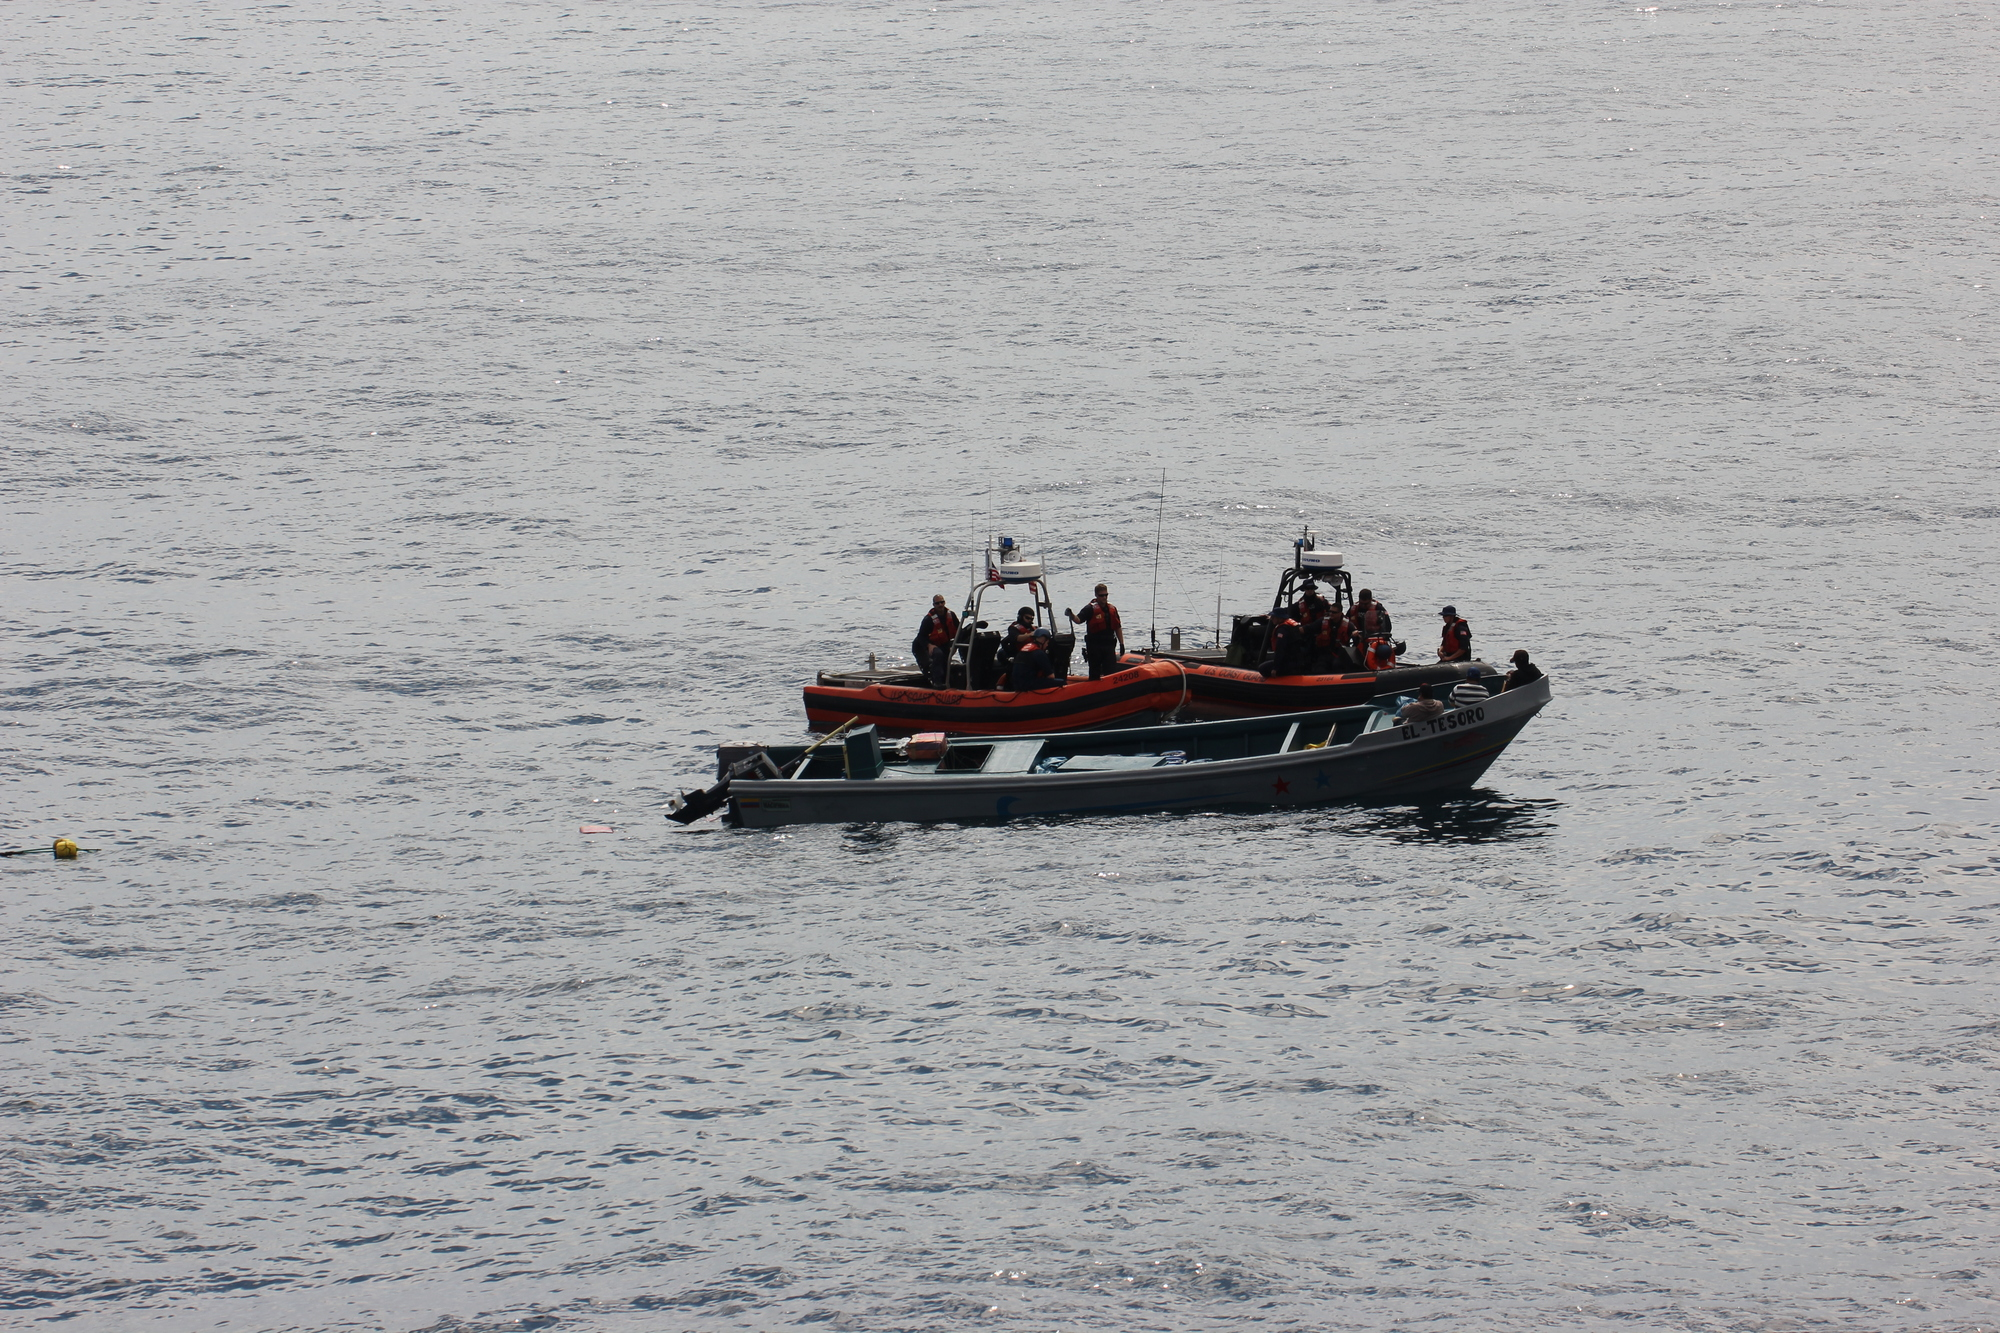 Coast Guard Cutter Steadfast intercepts suspected drug smuggling vessel